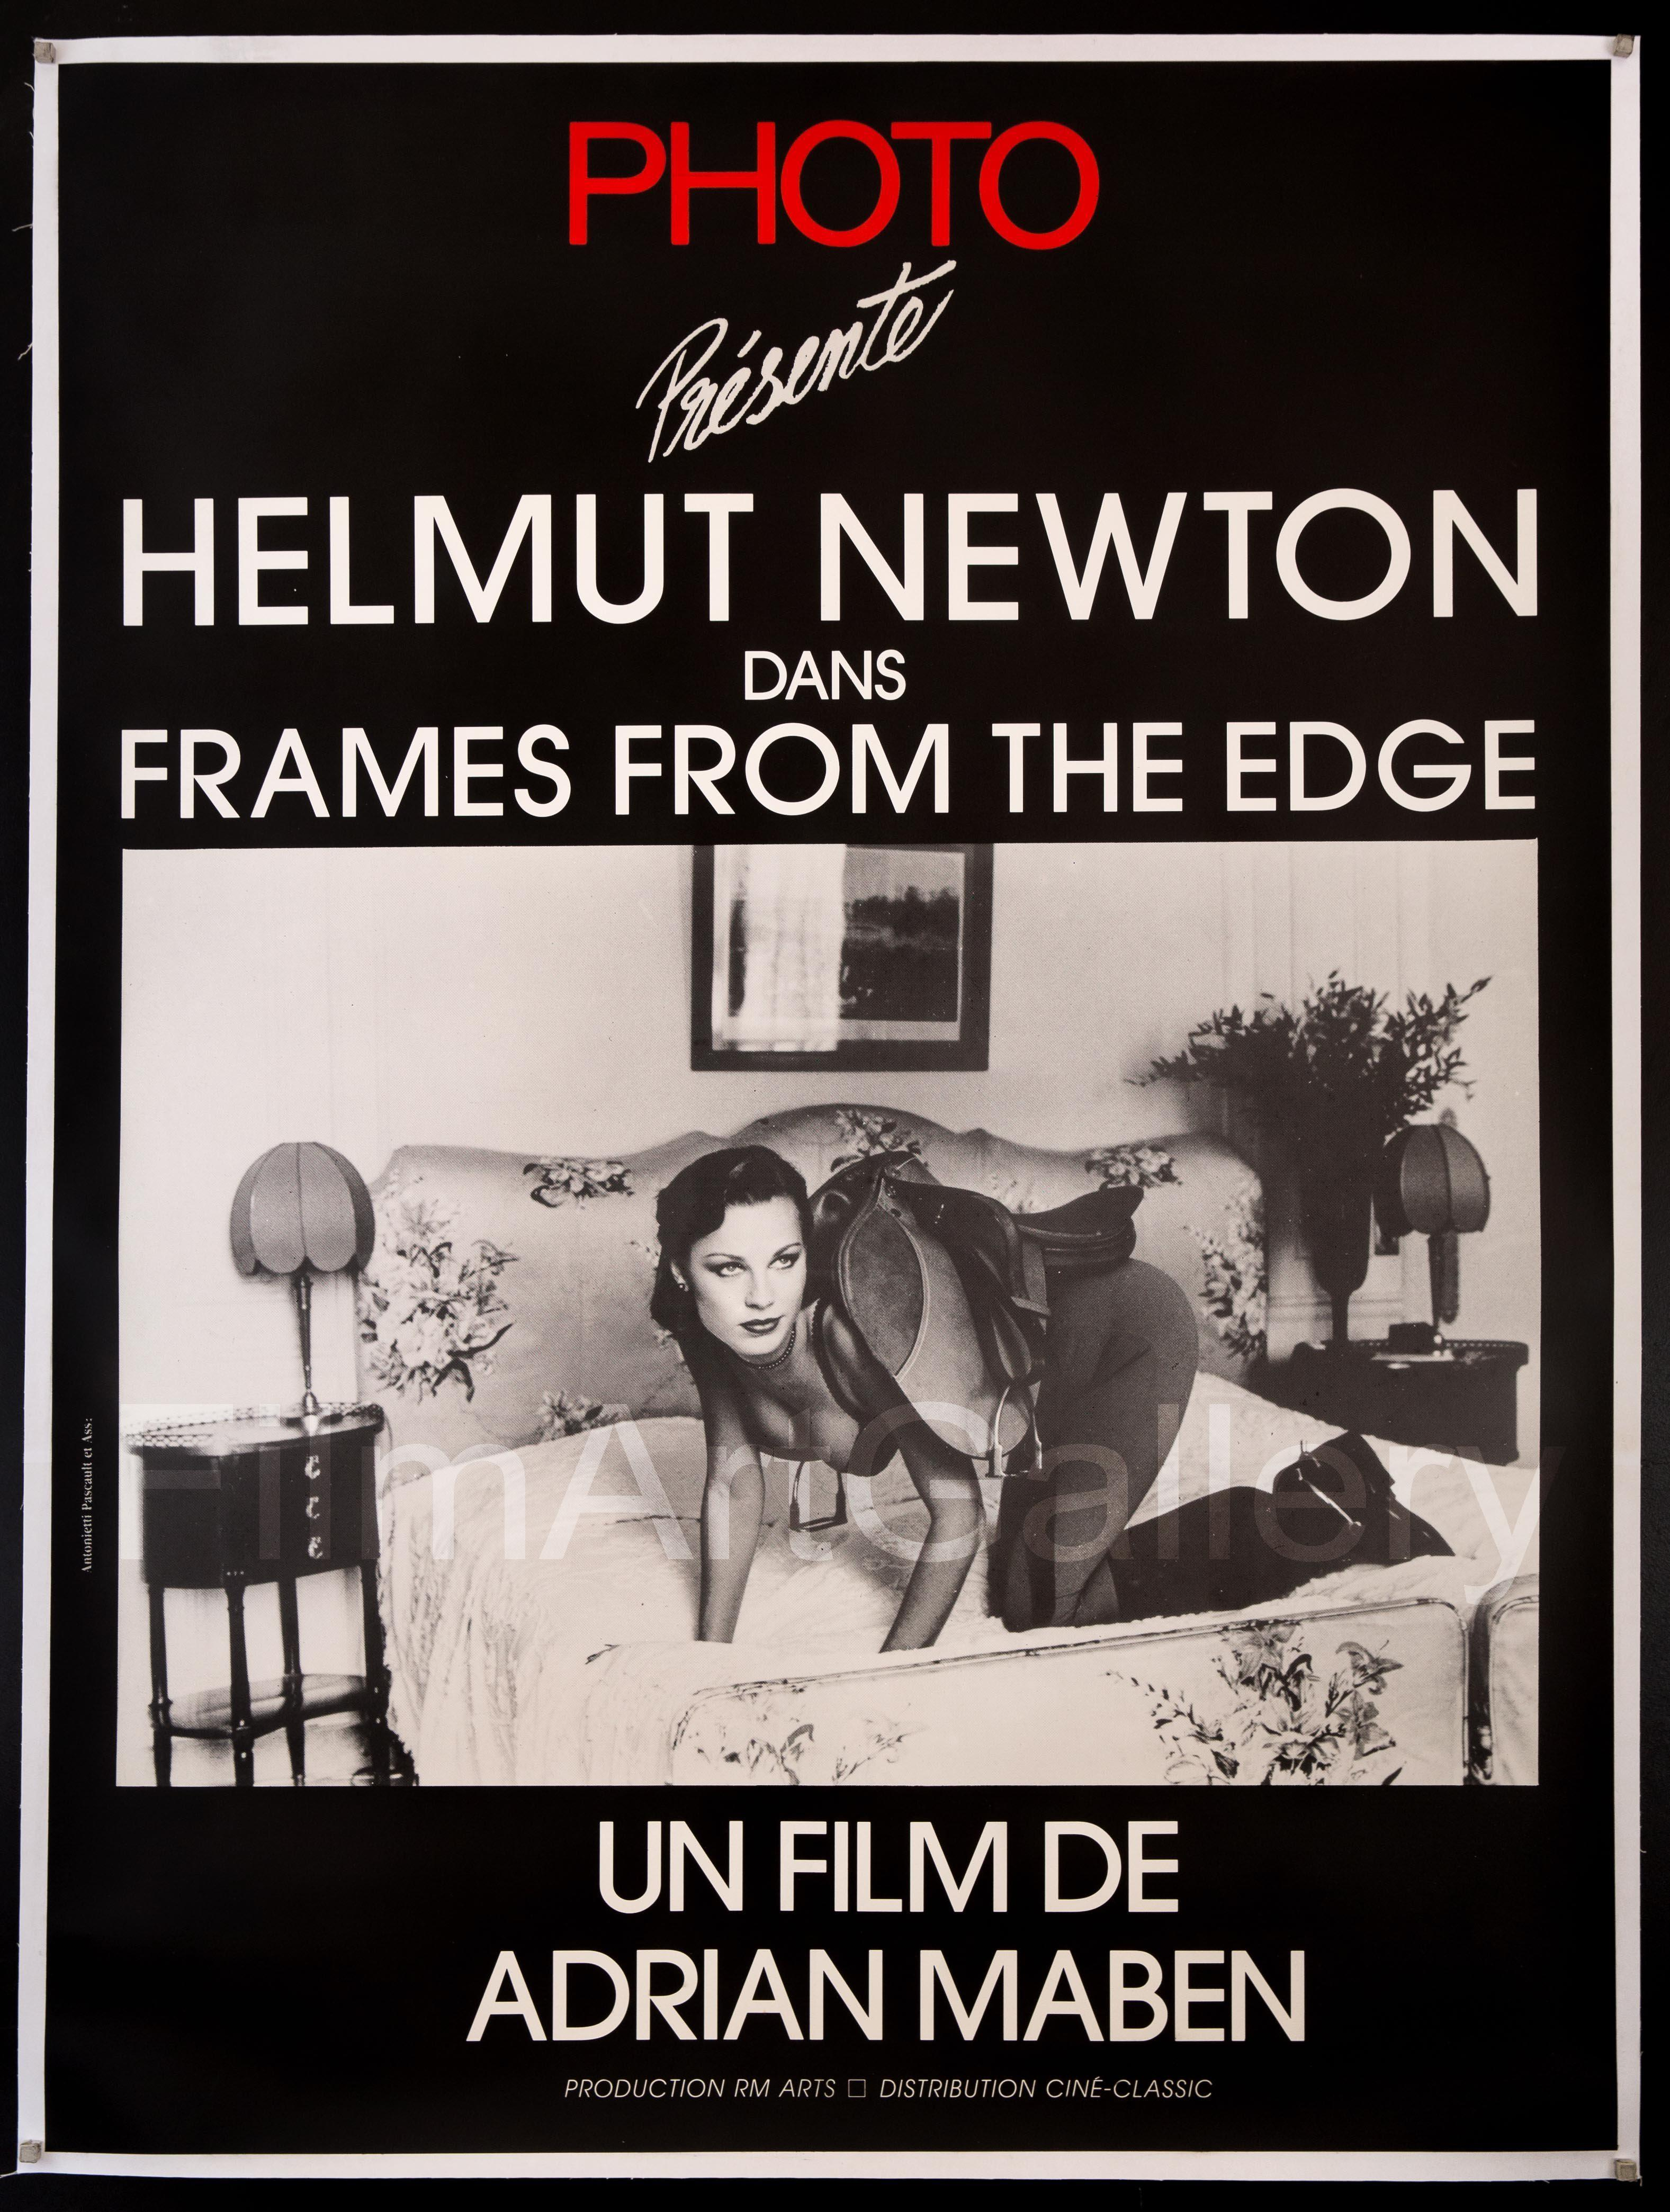 Helmut Newton Frames From The Edge French 1 panel (47x63) Original Vintage Movie Poster